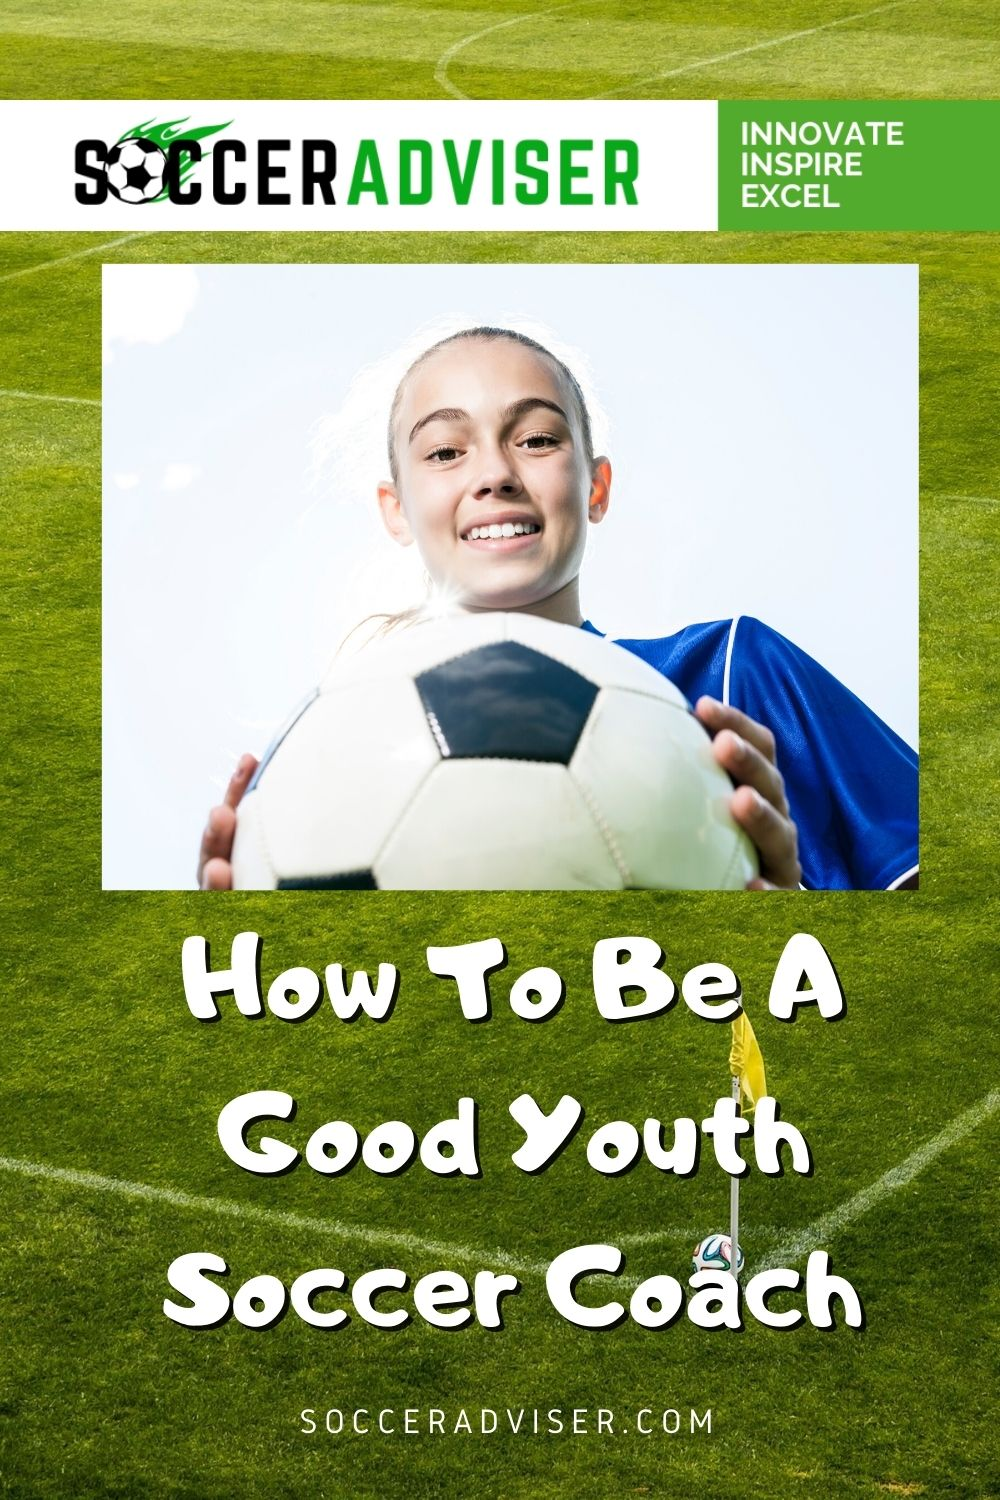 How To Be A Good Youth Soccer Coach